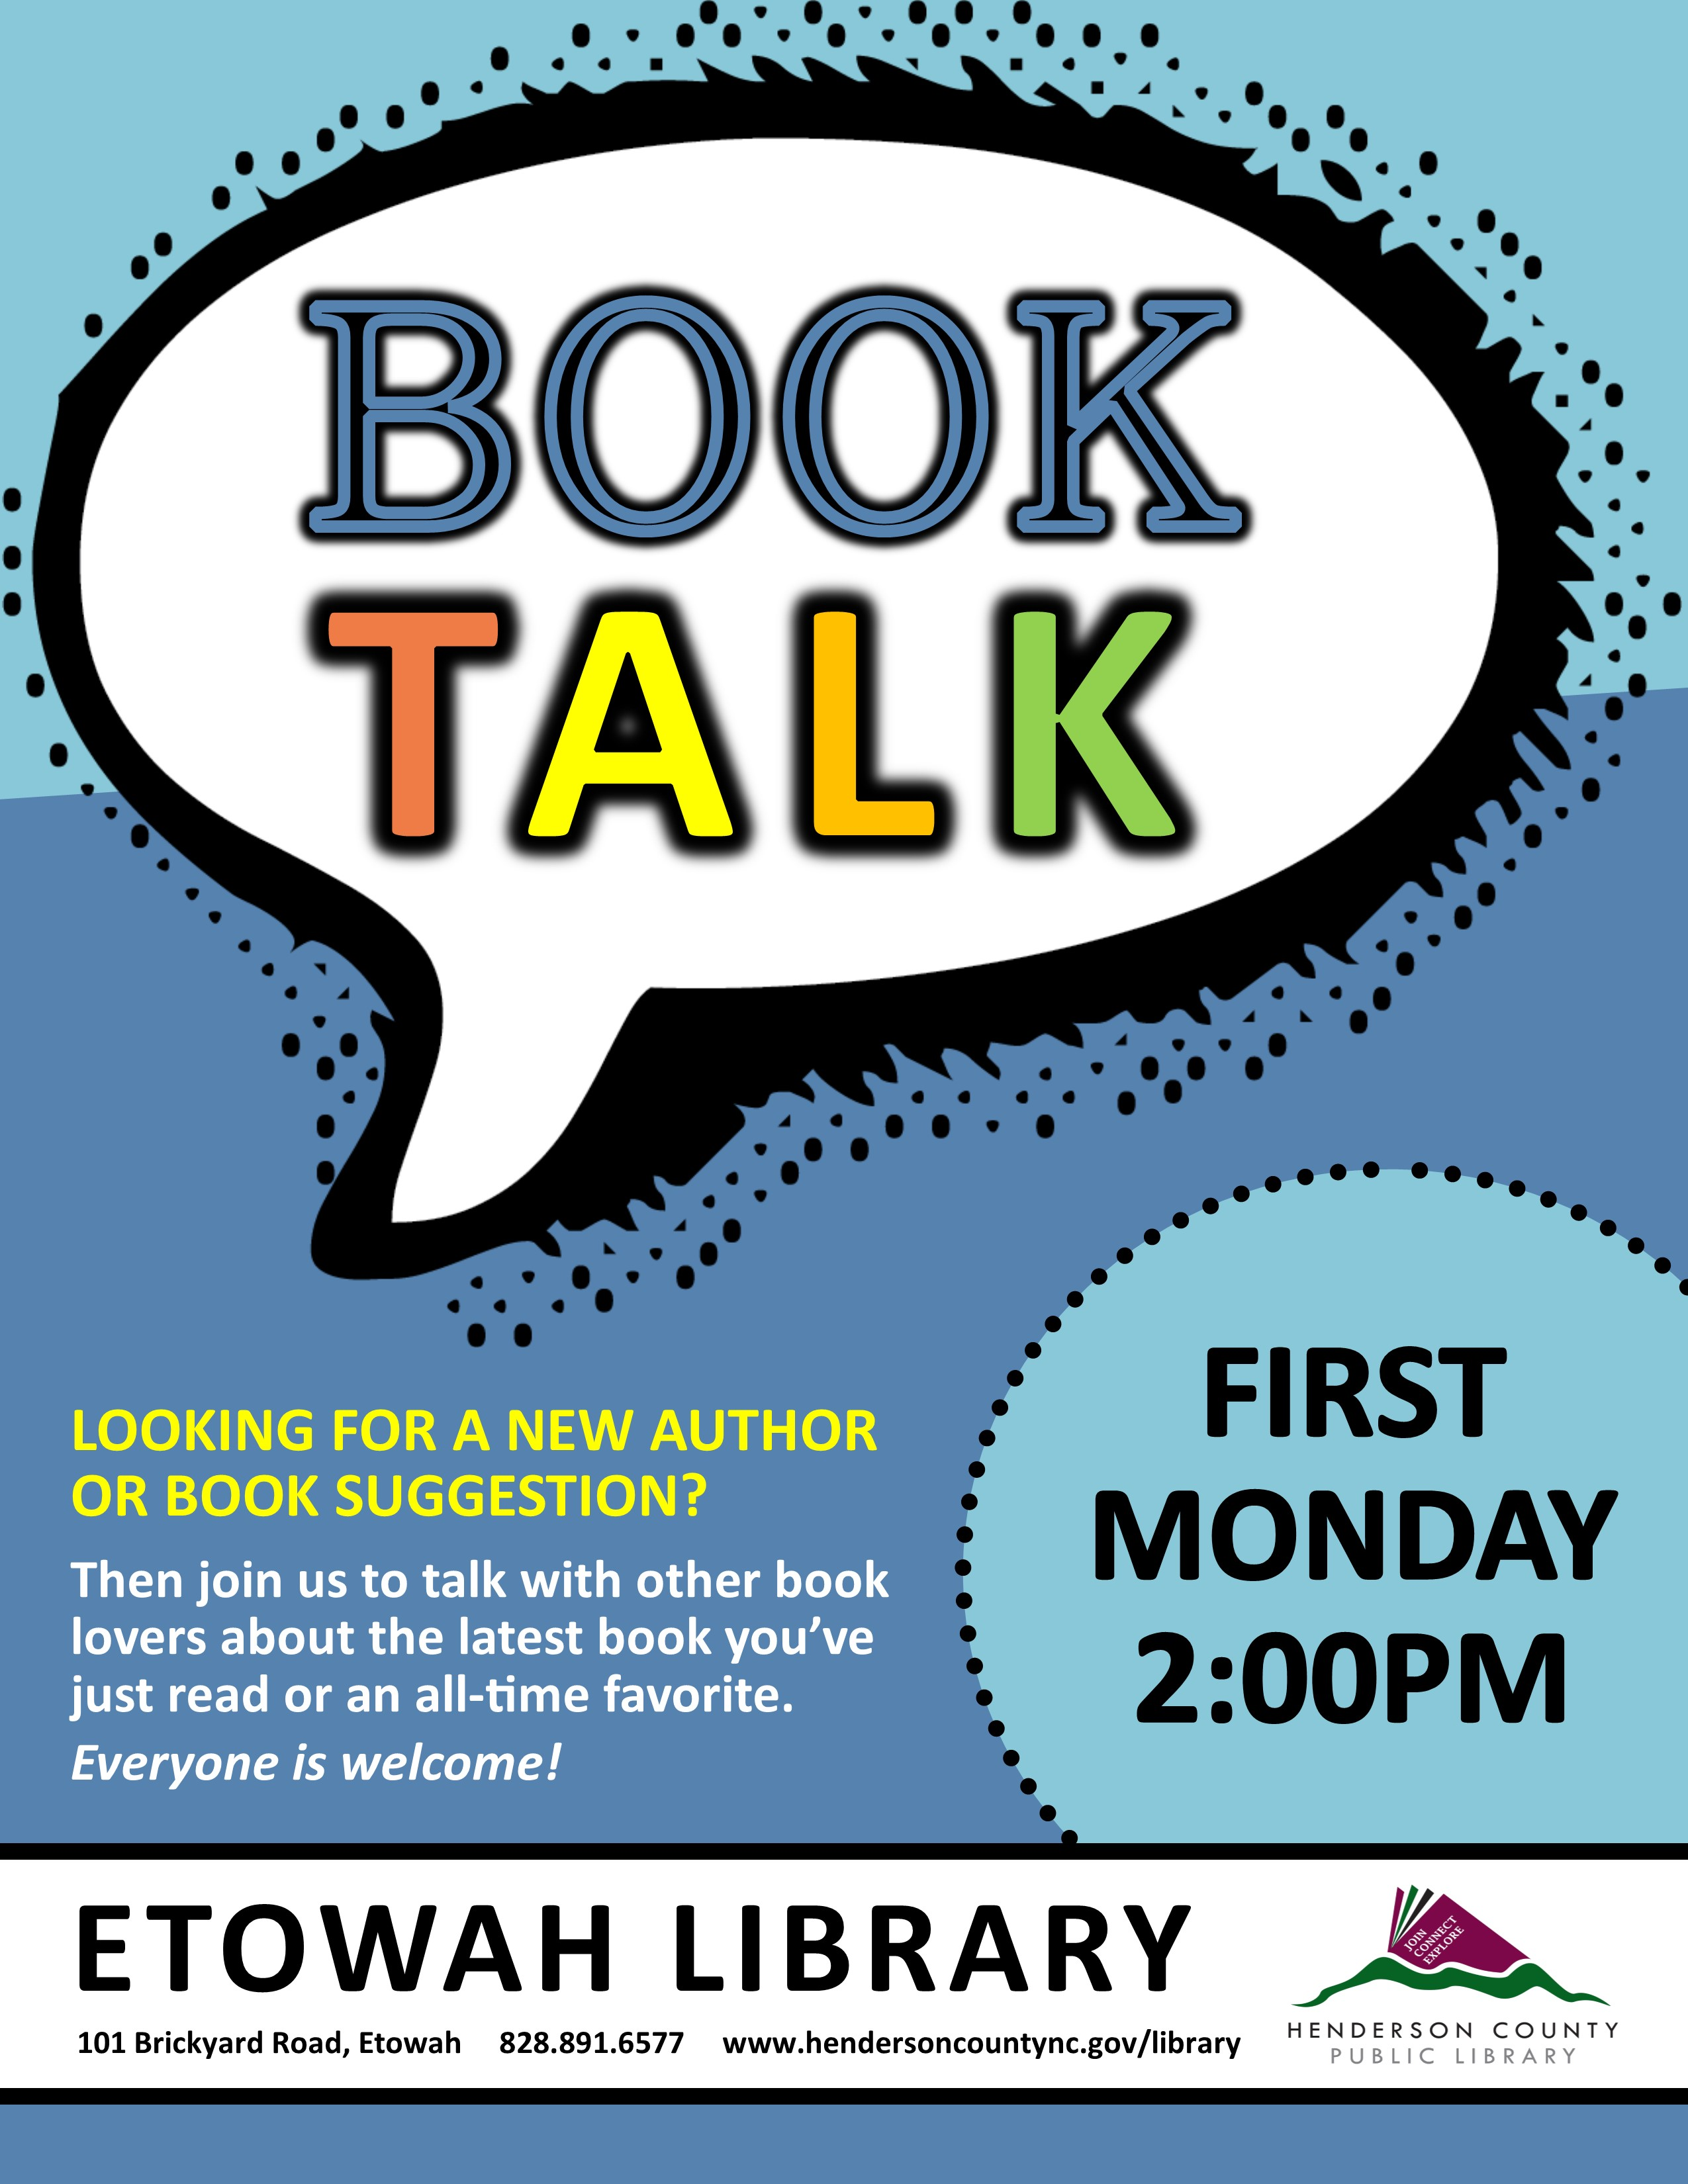 Book Talk at the Etowah Library